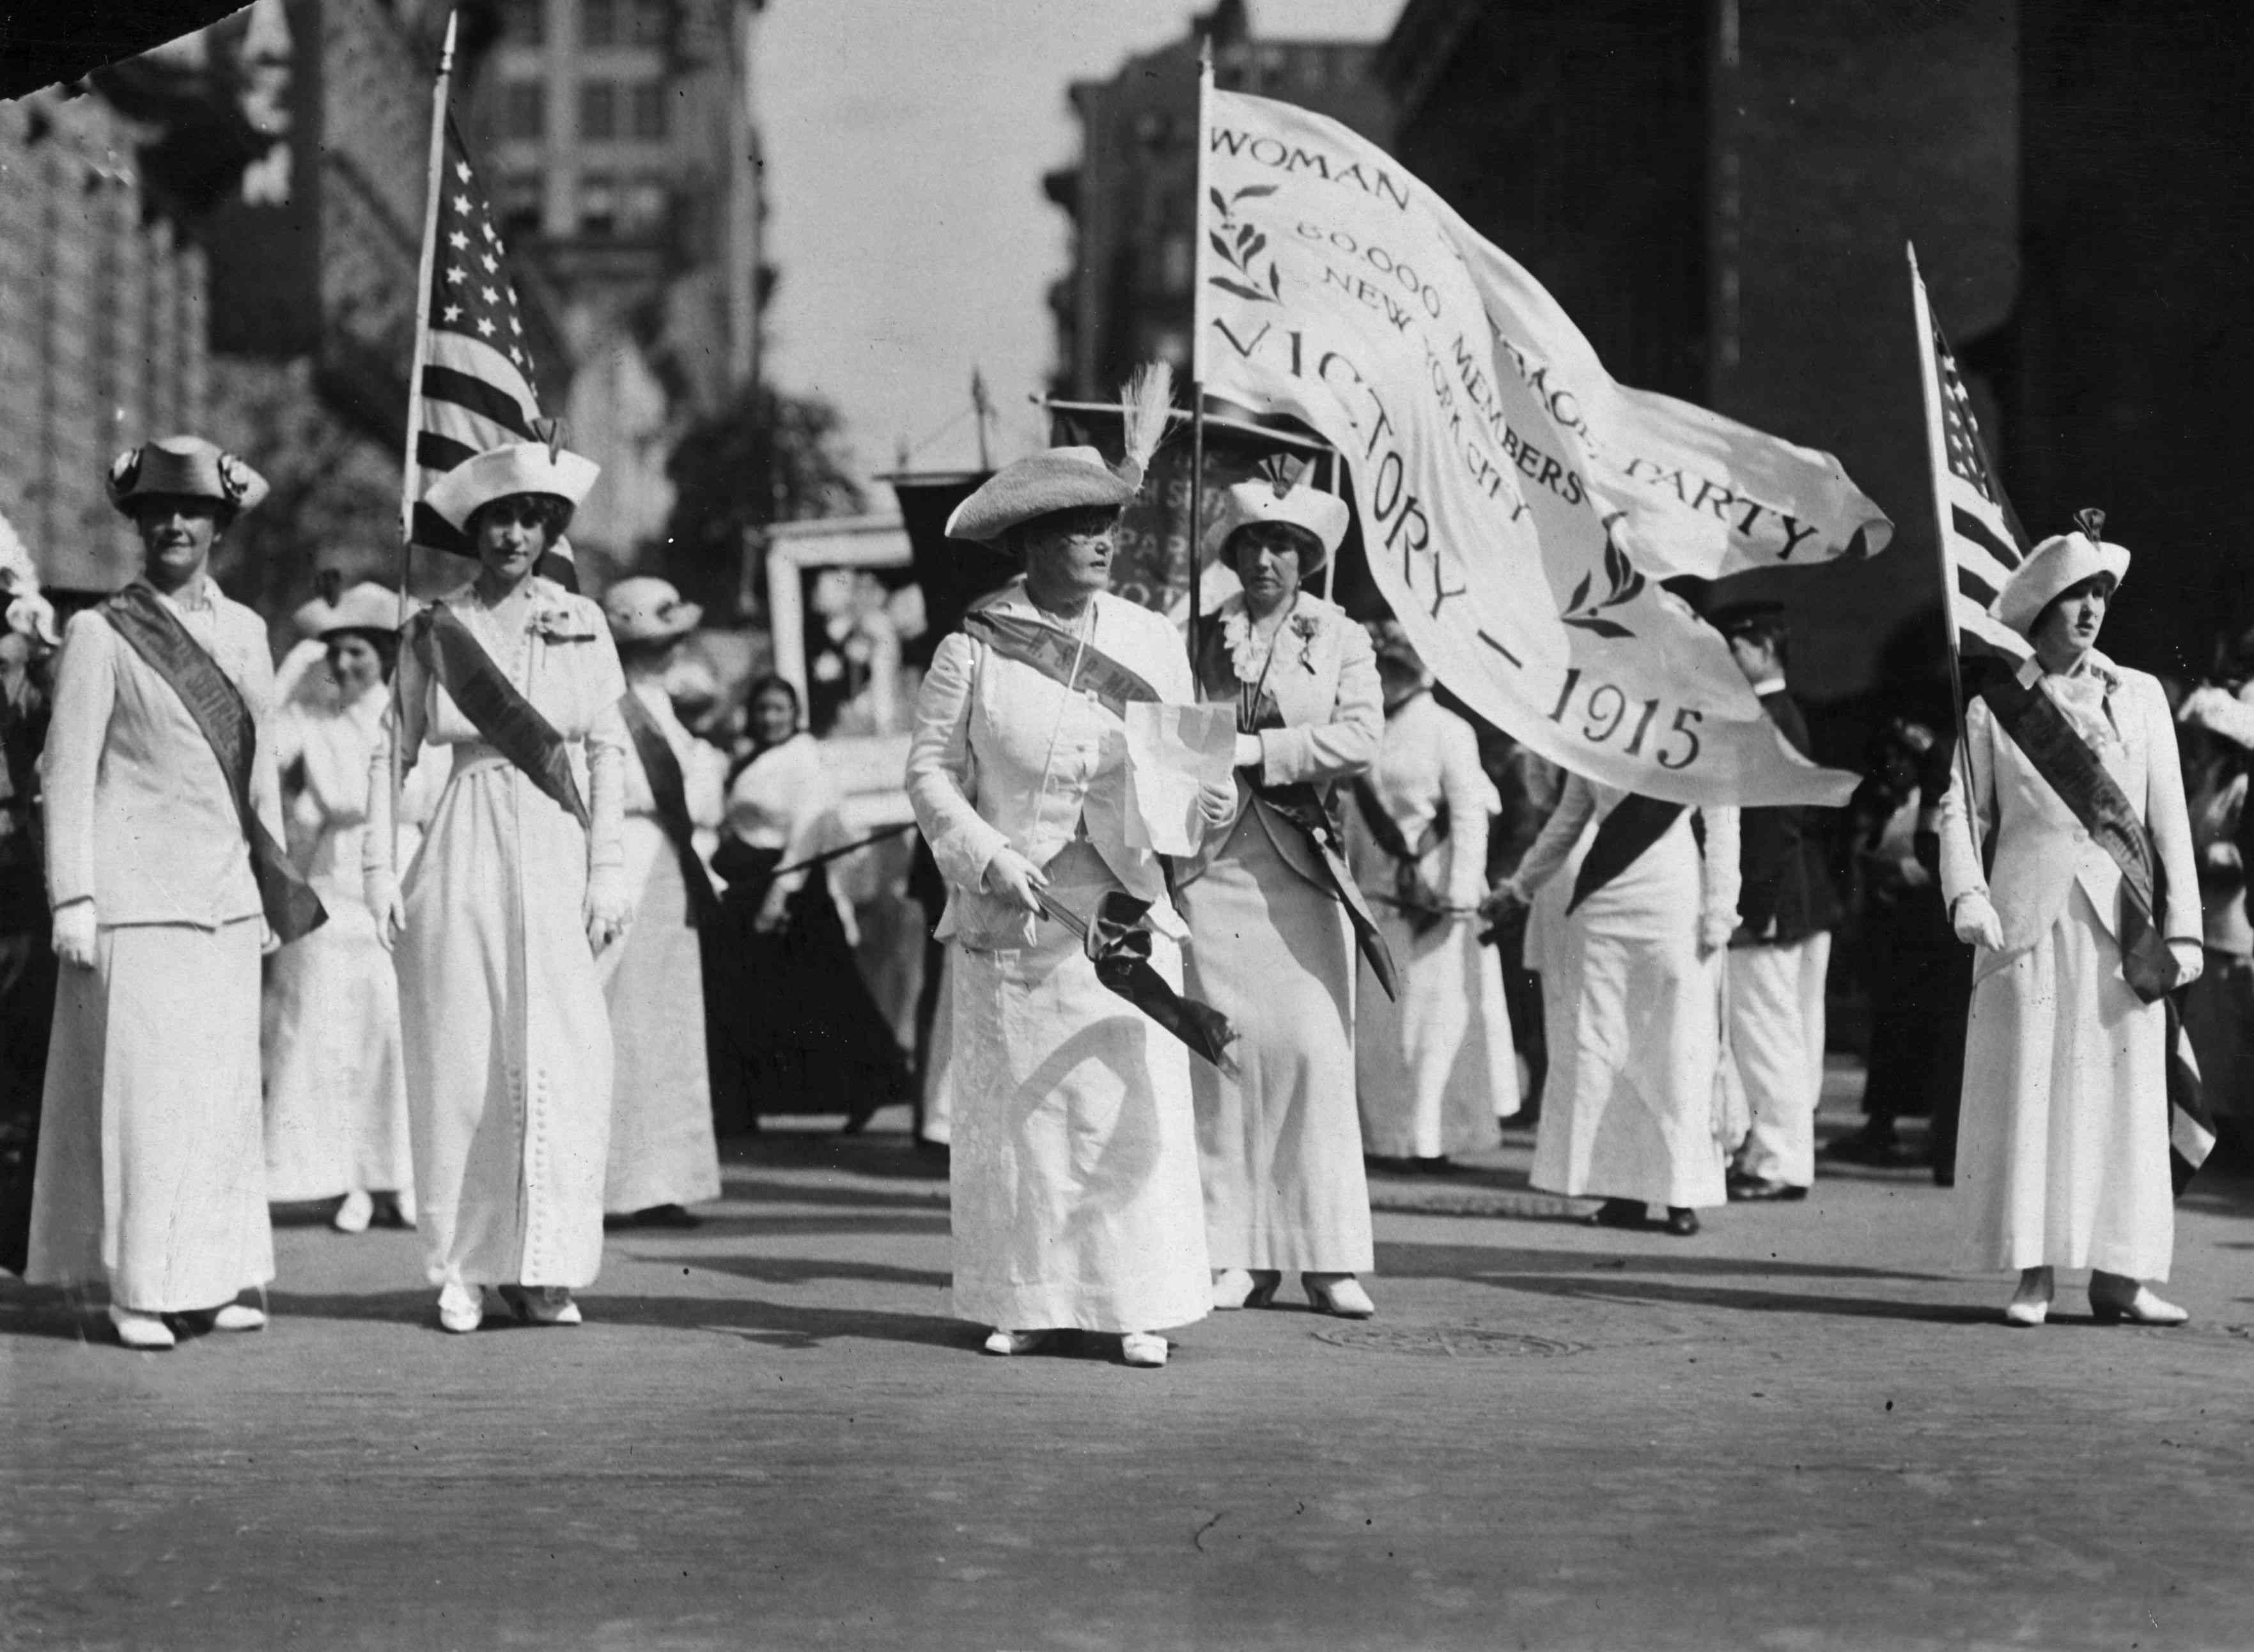 Woman Suffrage Party parade through New York, 1915.